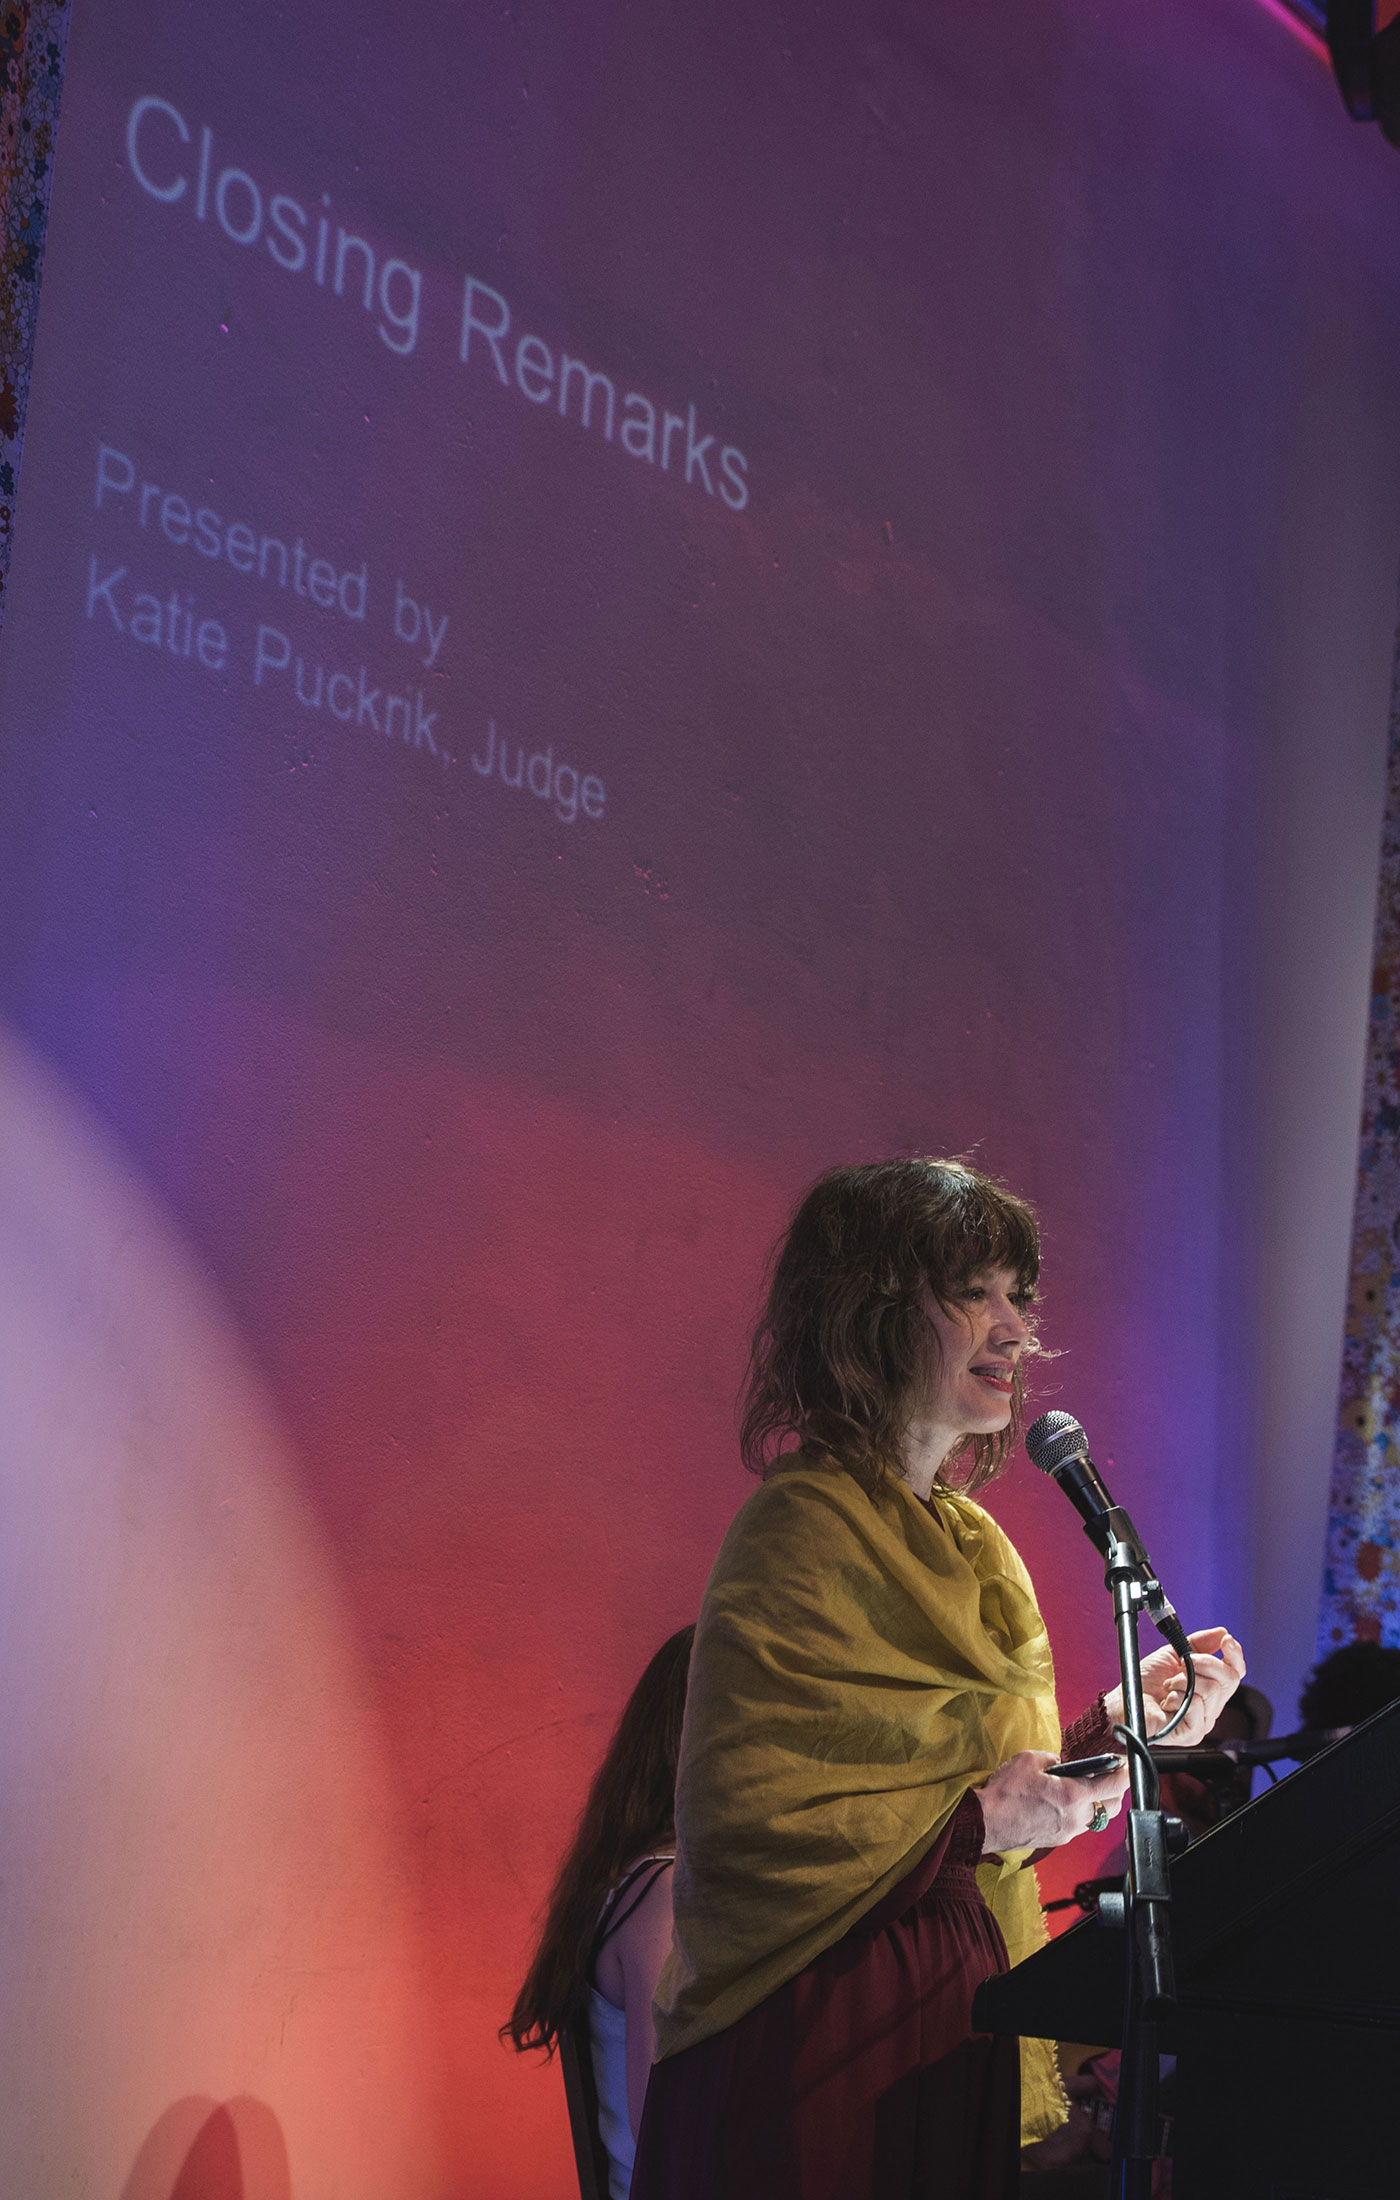 Katie Puckrik at The Art and Olfaction Awards, Photo by Marina Chichi